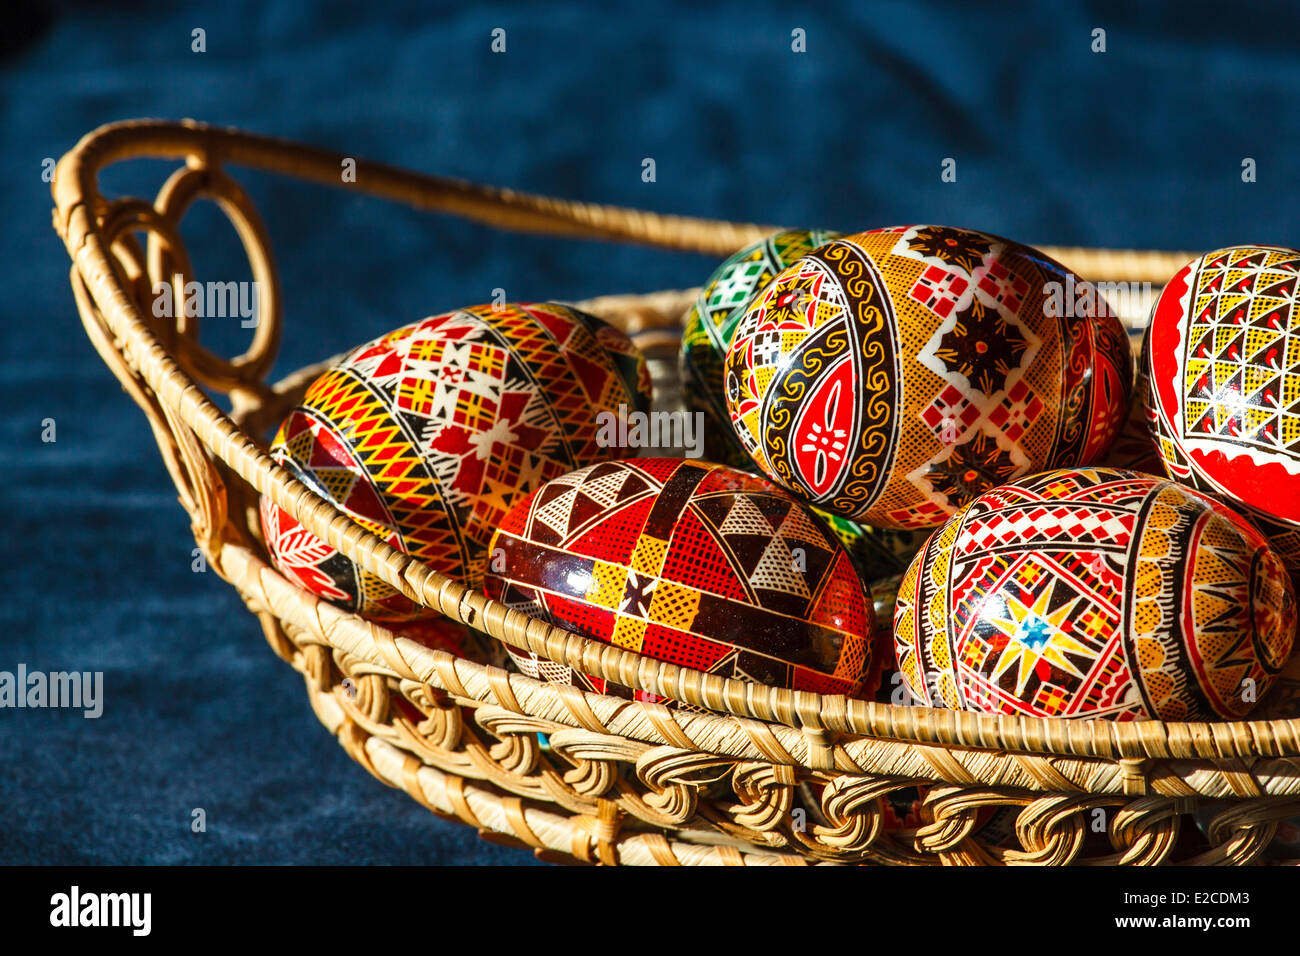 Romania, Bukovina Region, Moldovita, painted Easter eggs in a wicker basket - Stock Image